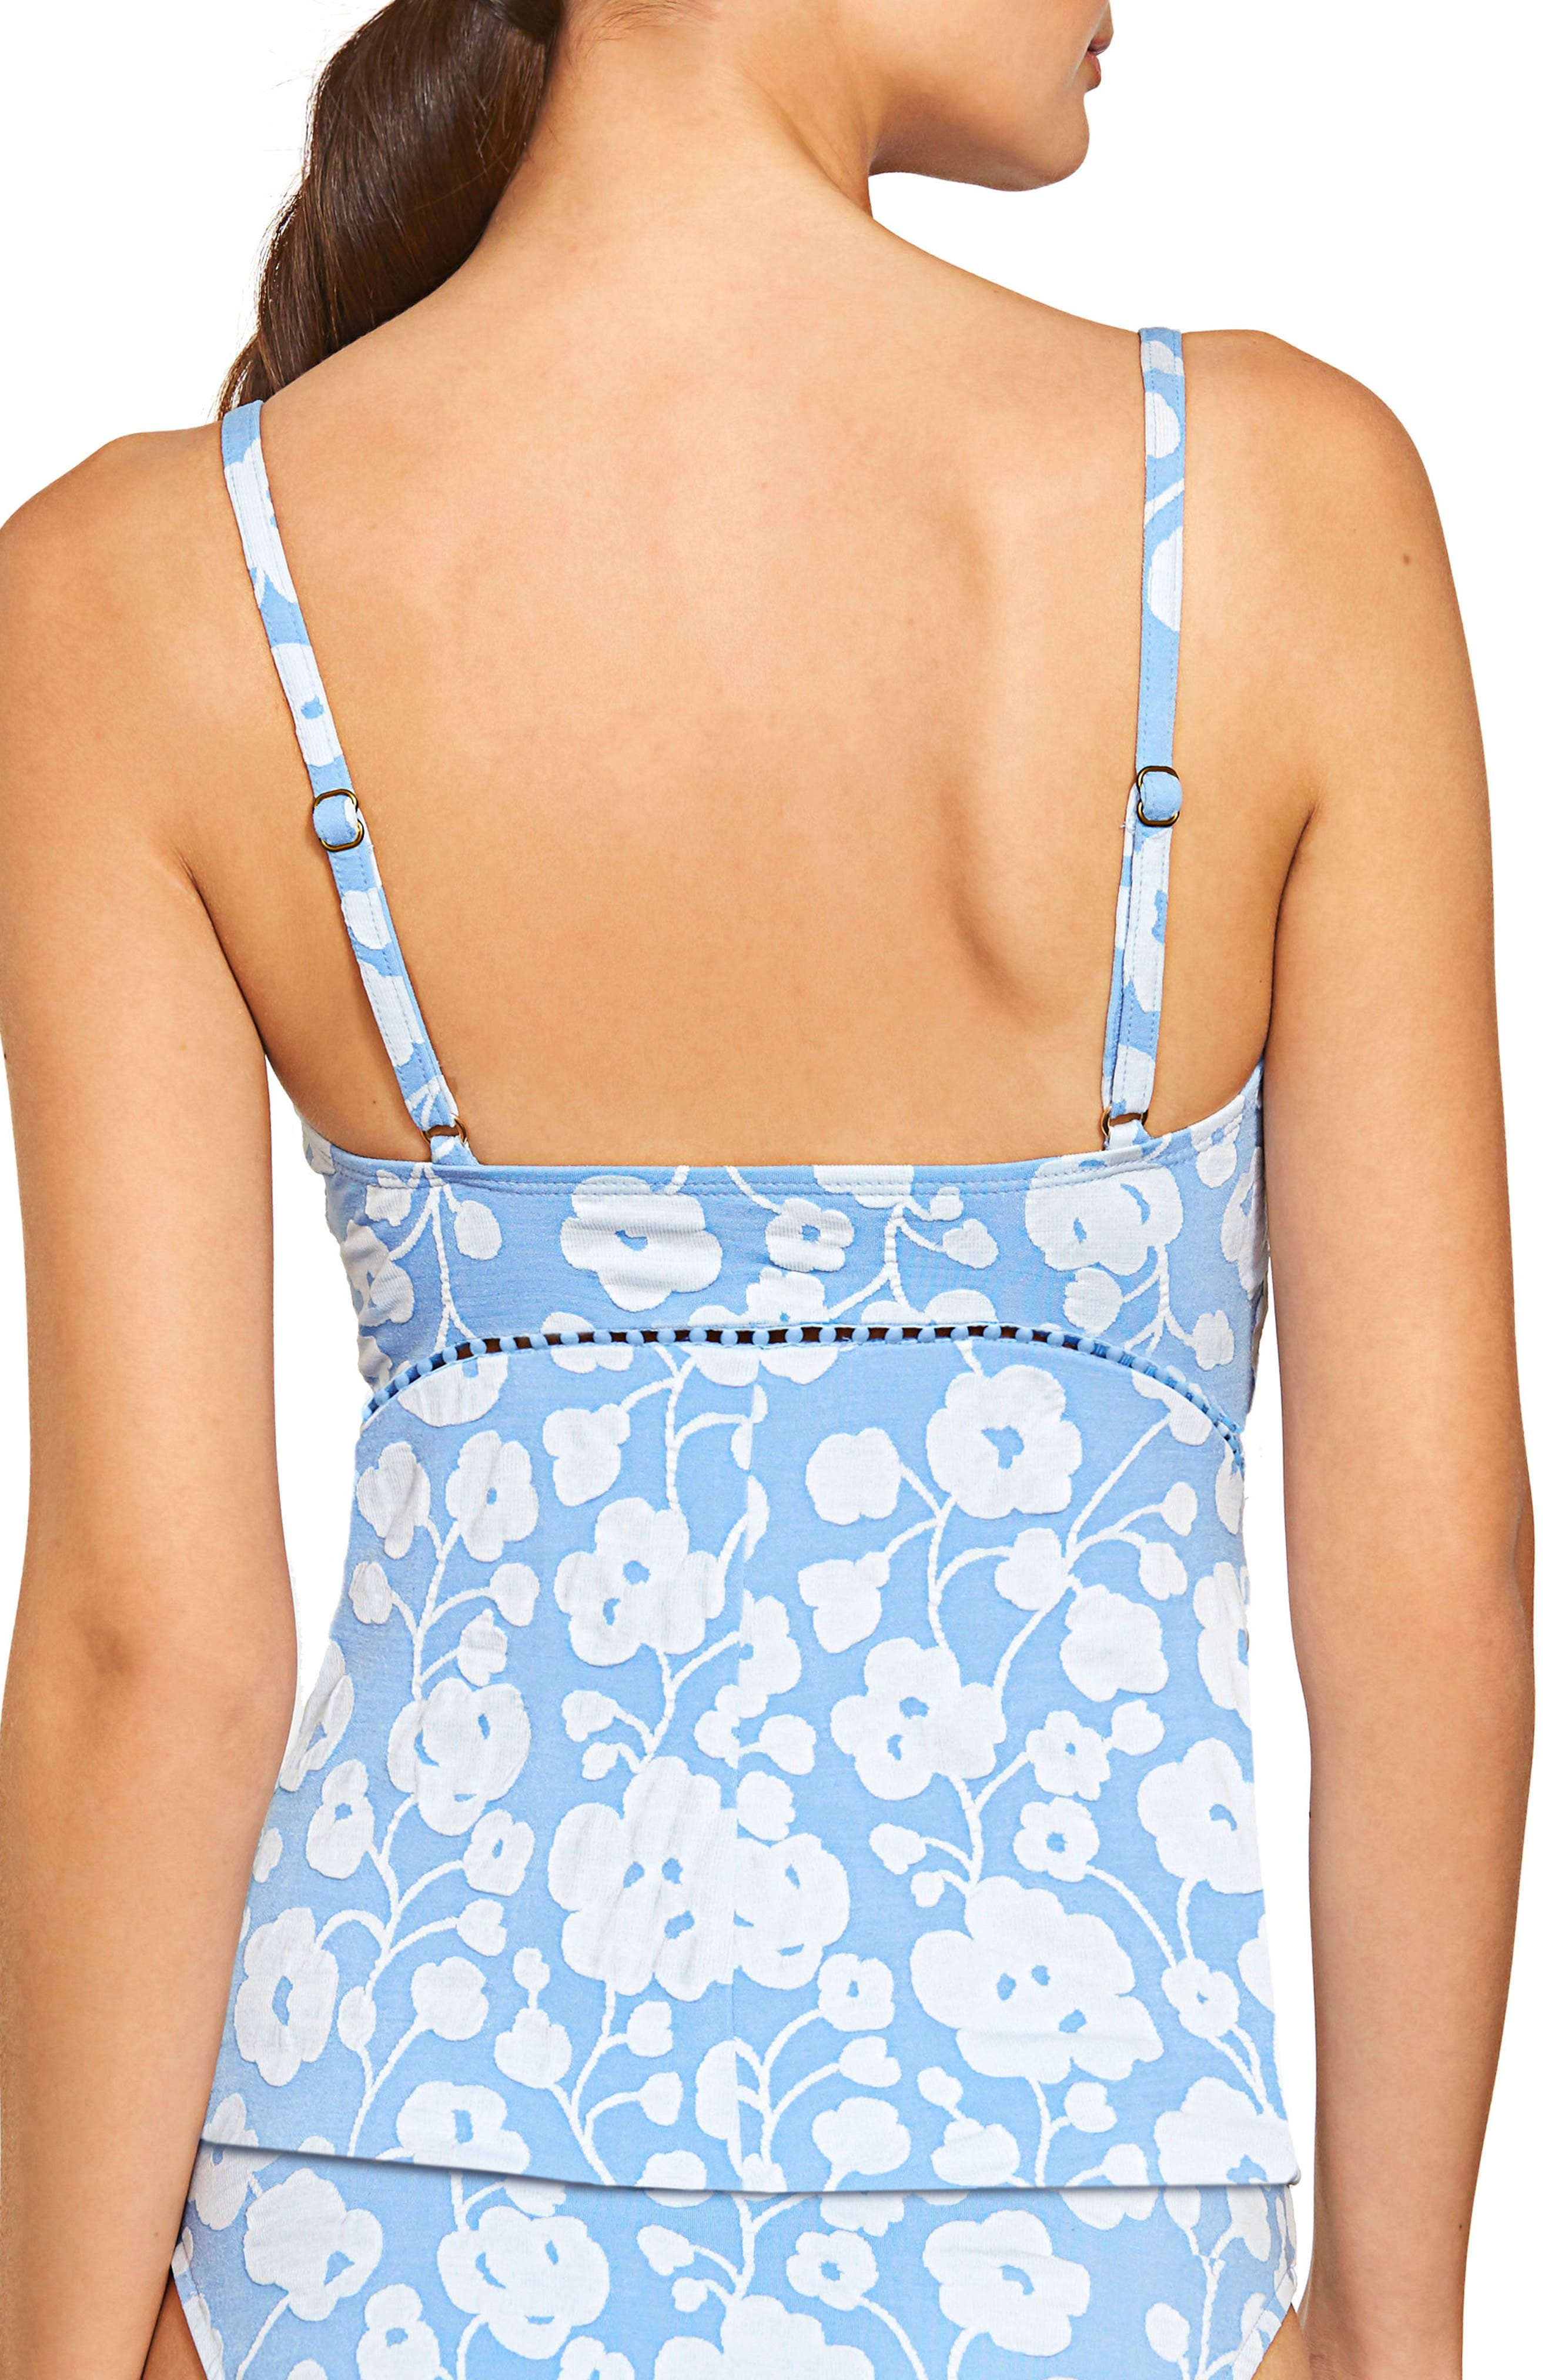 Sadie Floral Tankini Top,                             Alternate thumbnail 2, color,                             462